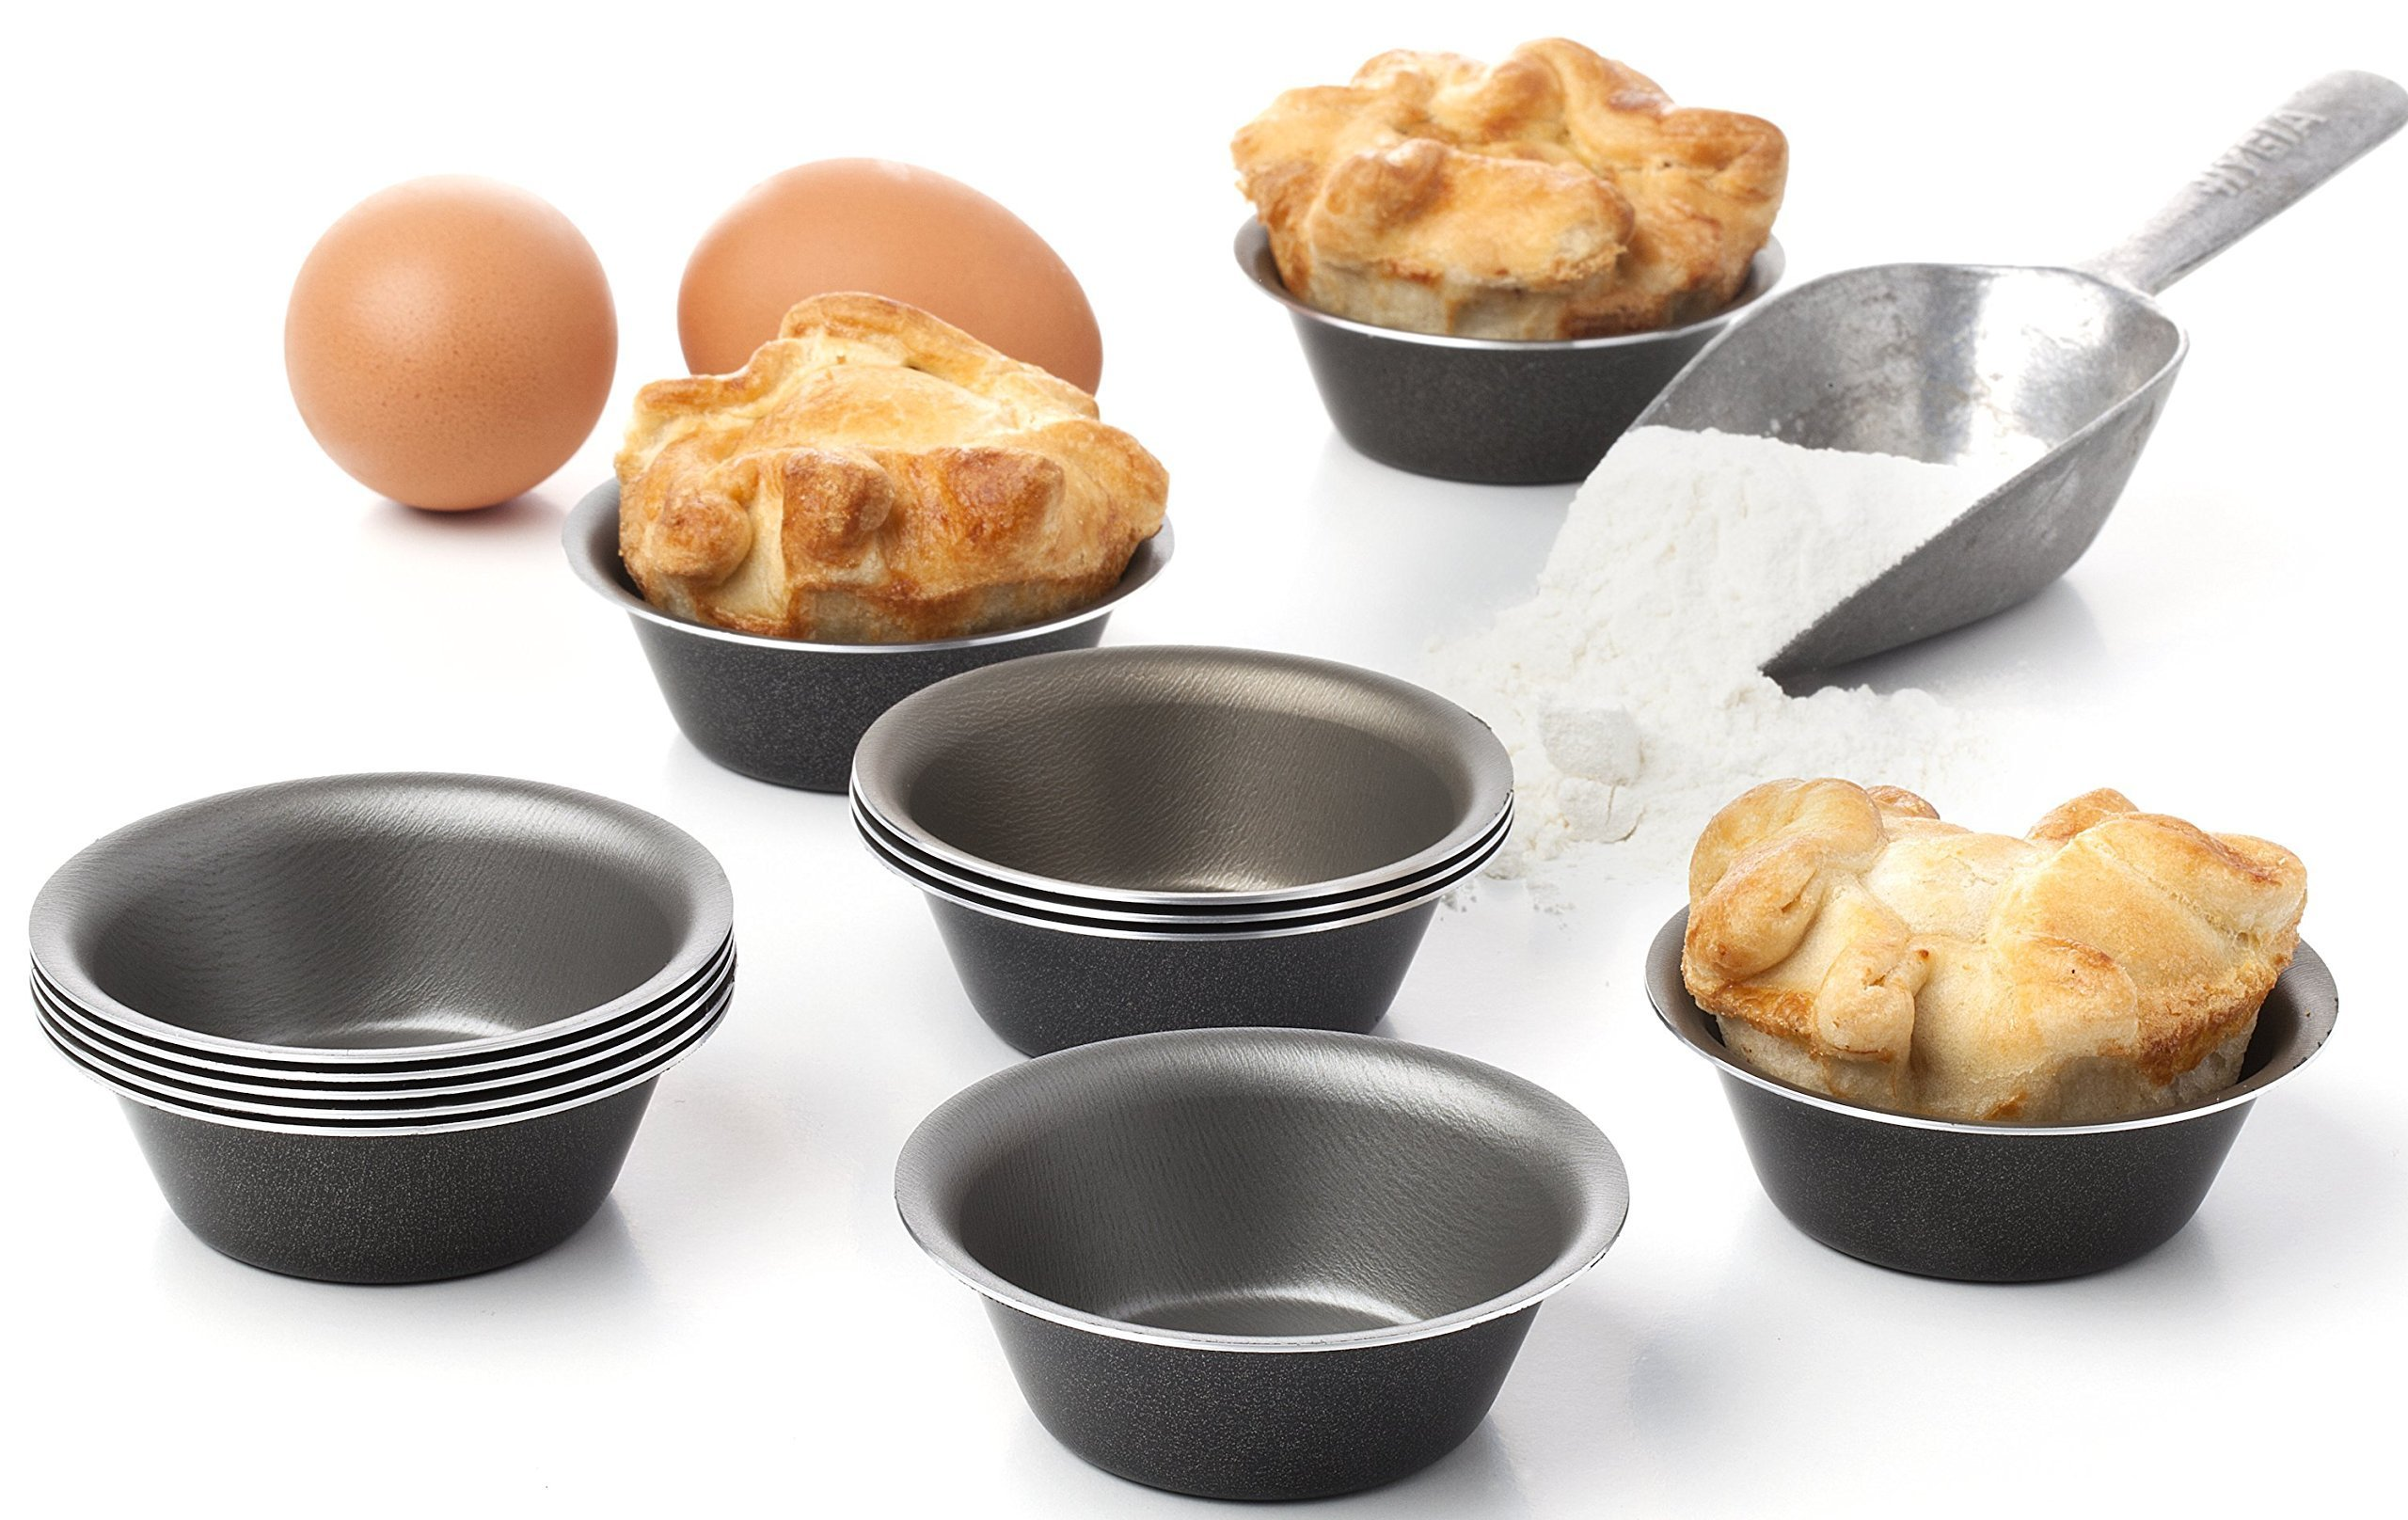 Maxi Nature Pack of 12 Mini Pie Muffin Cupcake Pans egg Tart Bakeware - 3.1 Inch Tins - 12 Molds NonStick Black bakeware